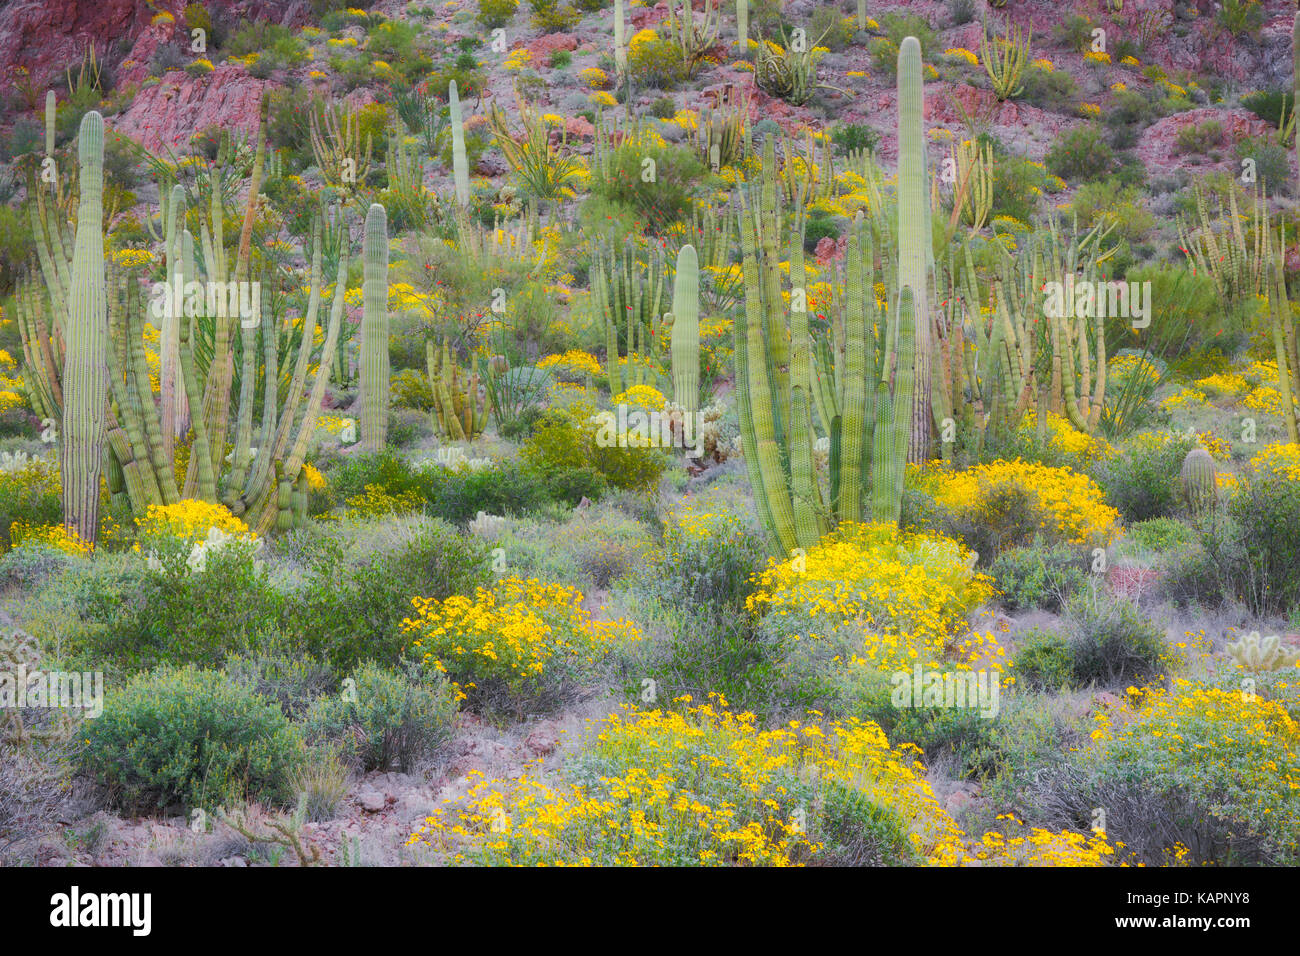 Spring bloom of brittle bush among the varieties of cacti in the Sonoran Desert and Arizona's Organ Pipe Cactus - Stock Image